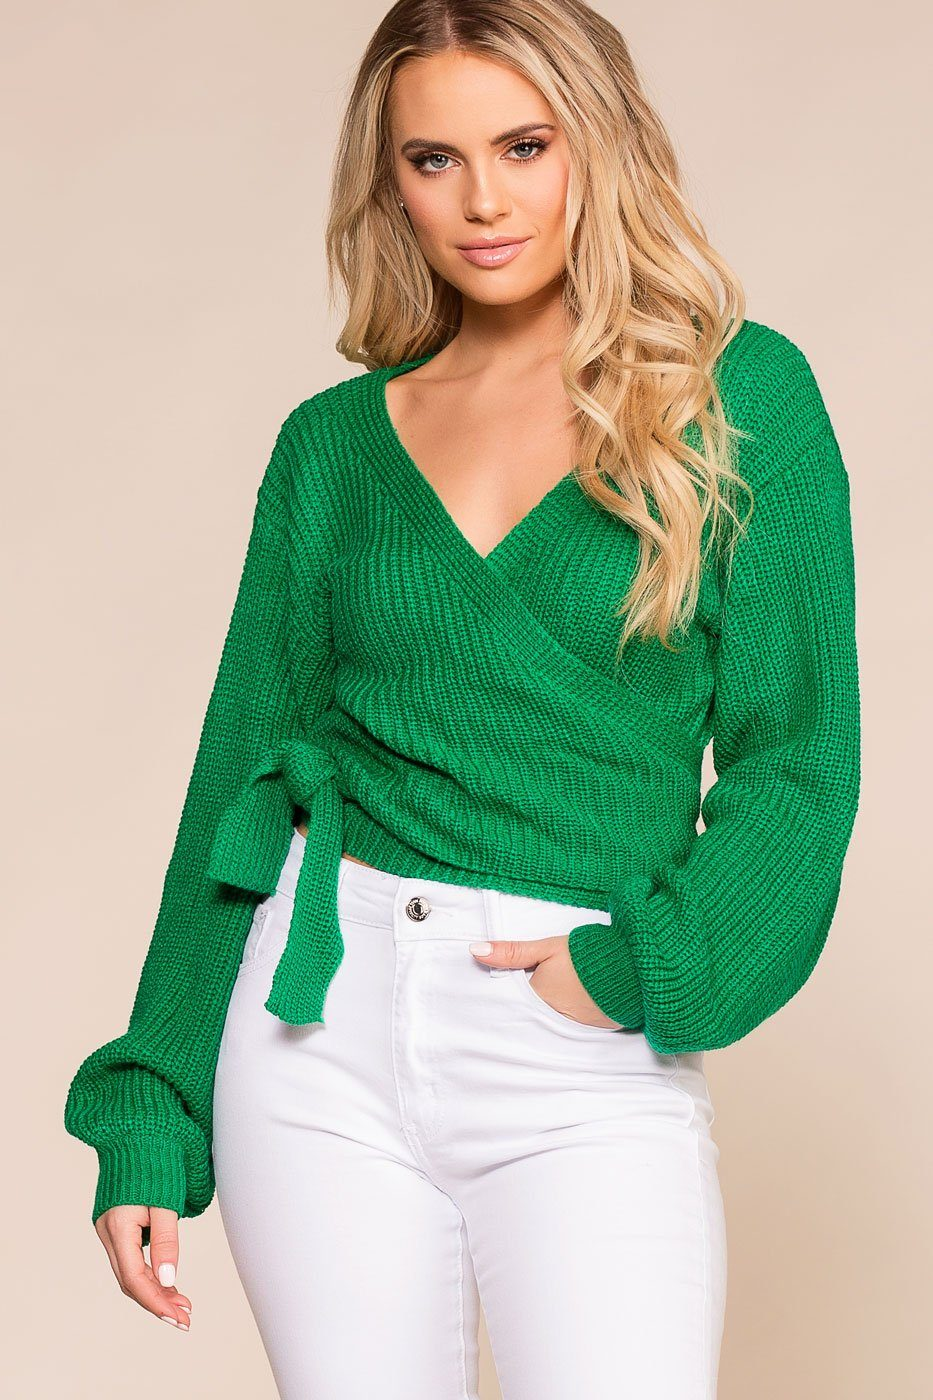 2ce5b9ebd4d2 Dewdrop Green Knit Wrap Sweater Top | In The Beginning